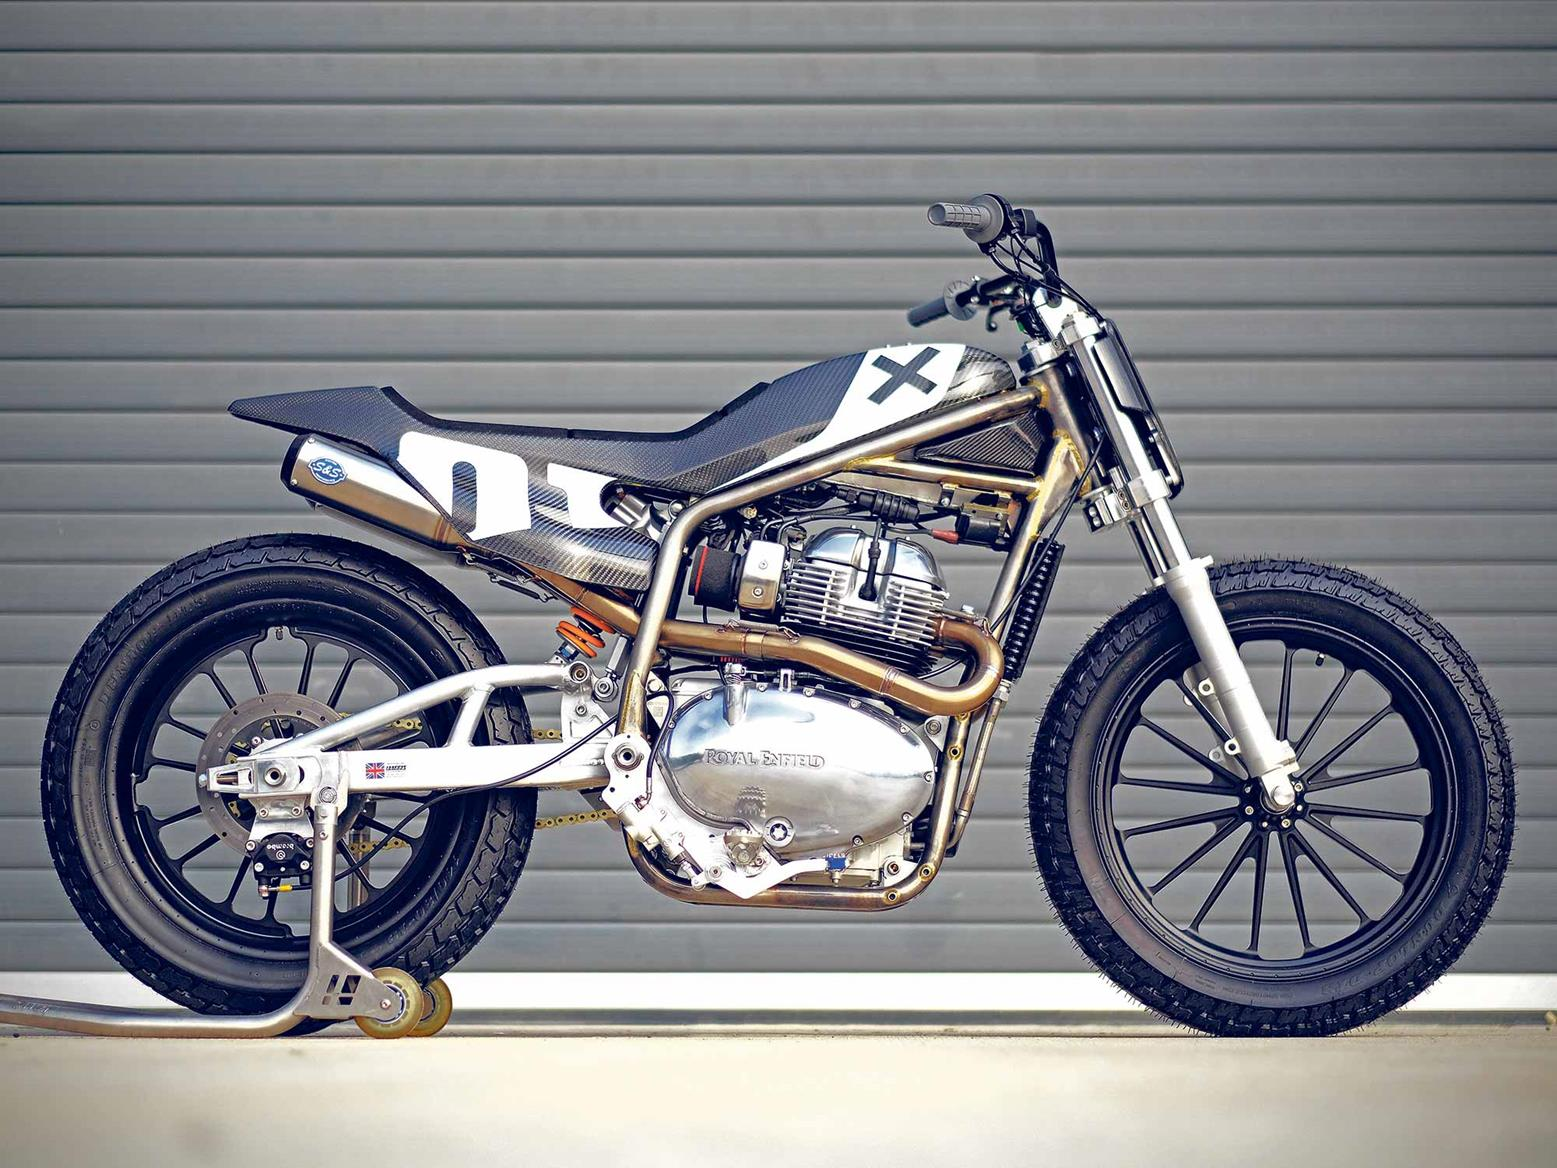 Royal Enfield custom 650 'tracker' and new Slide school hints at future